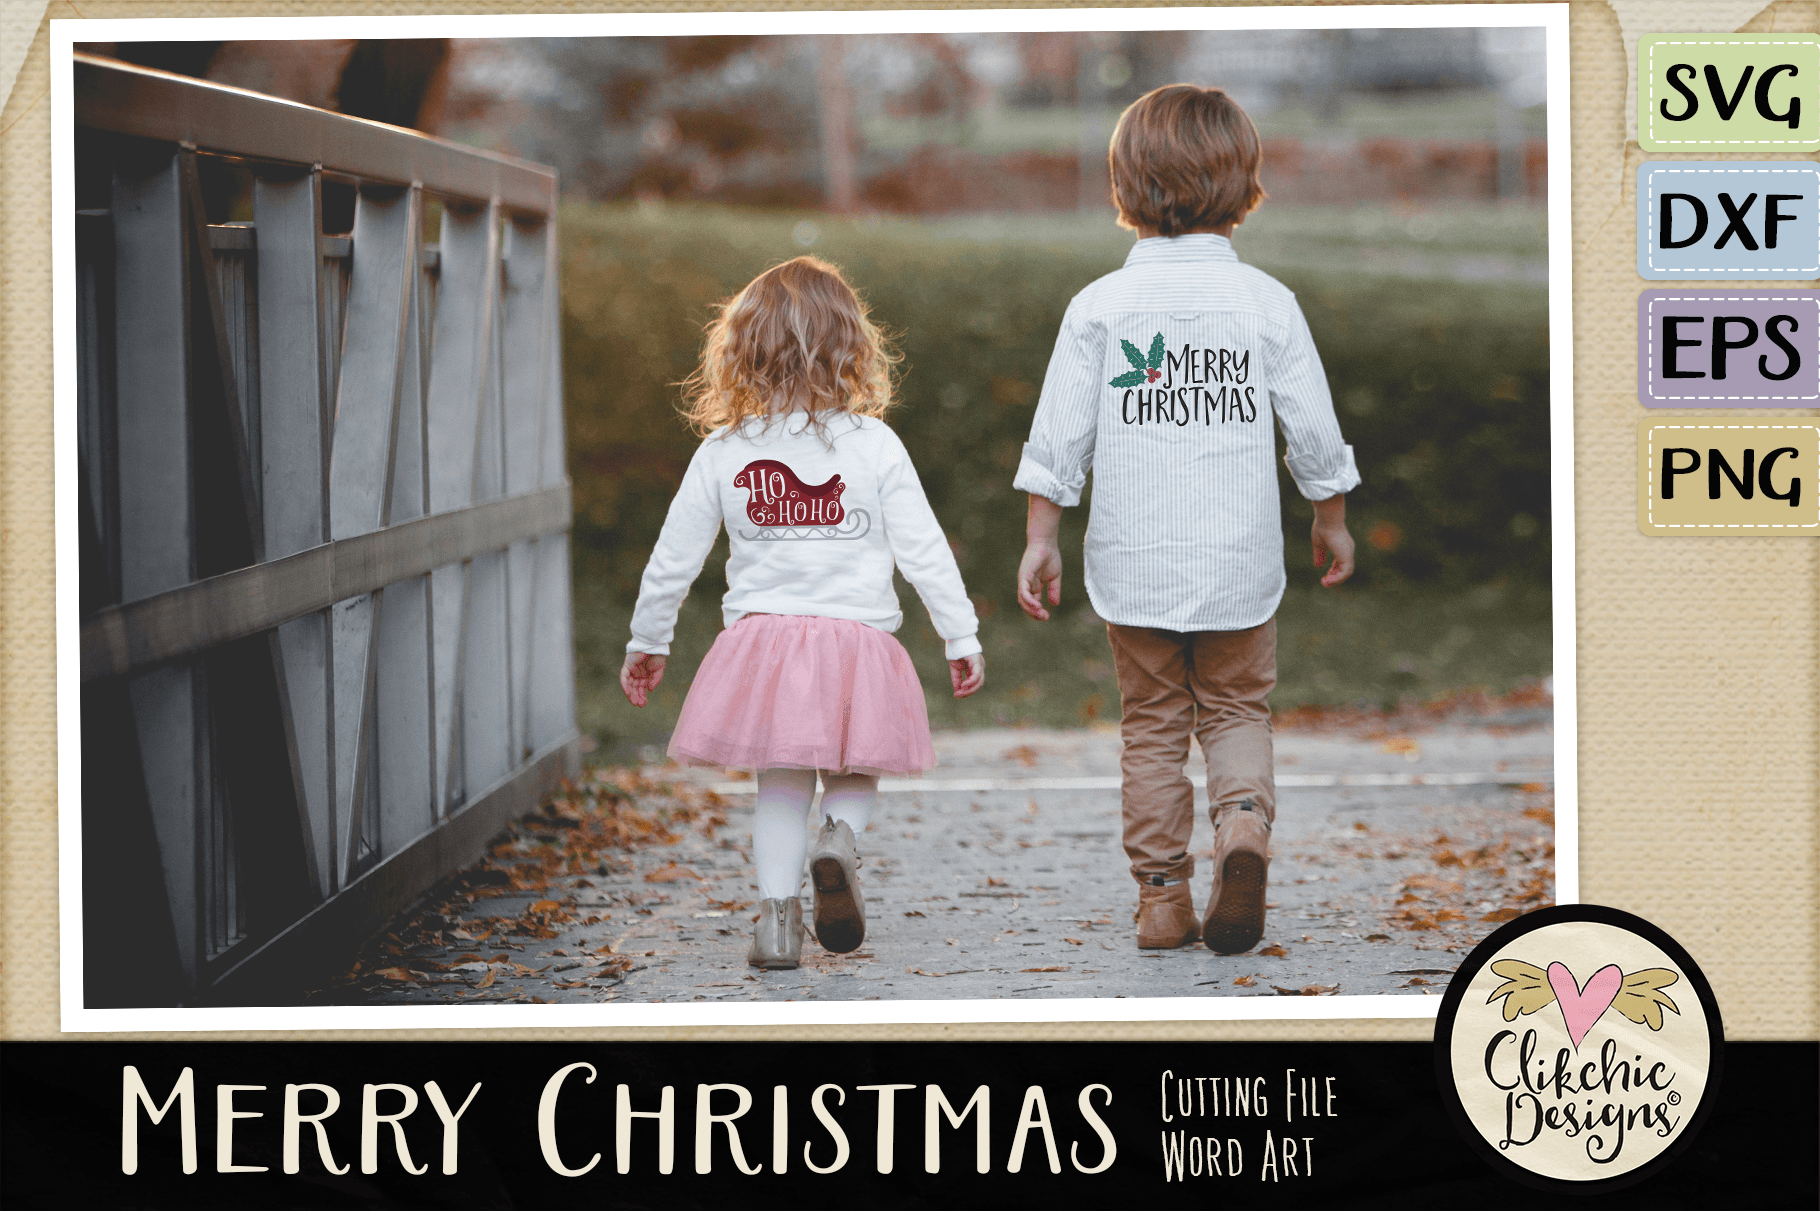 Merry Christmas SVG & DXF Cutting file Word Art example image 3